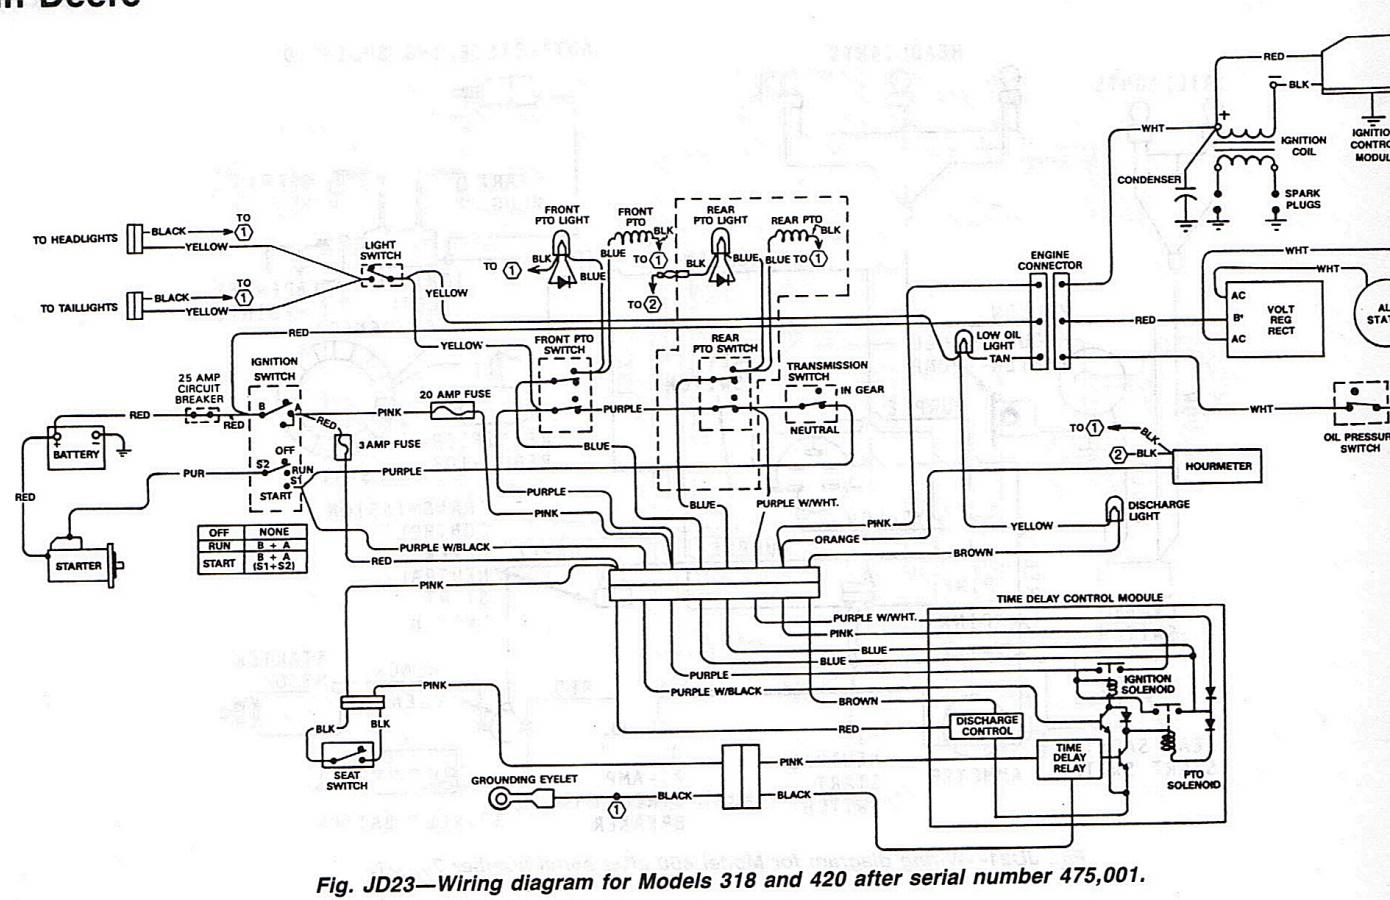 John Deere 420c Wiring Diagram - Wiring Diagrams Hidden on